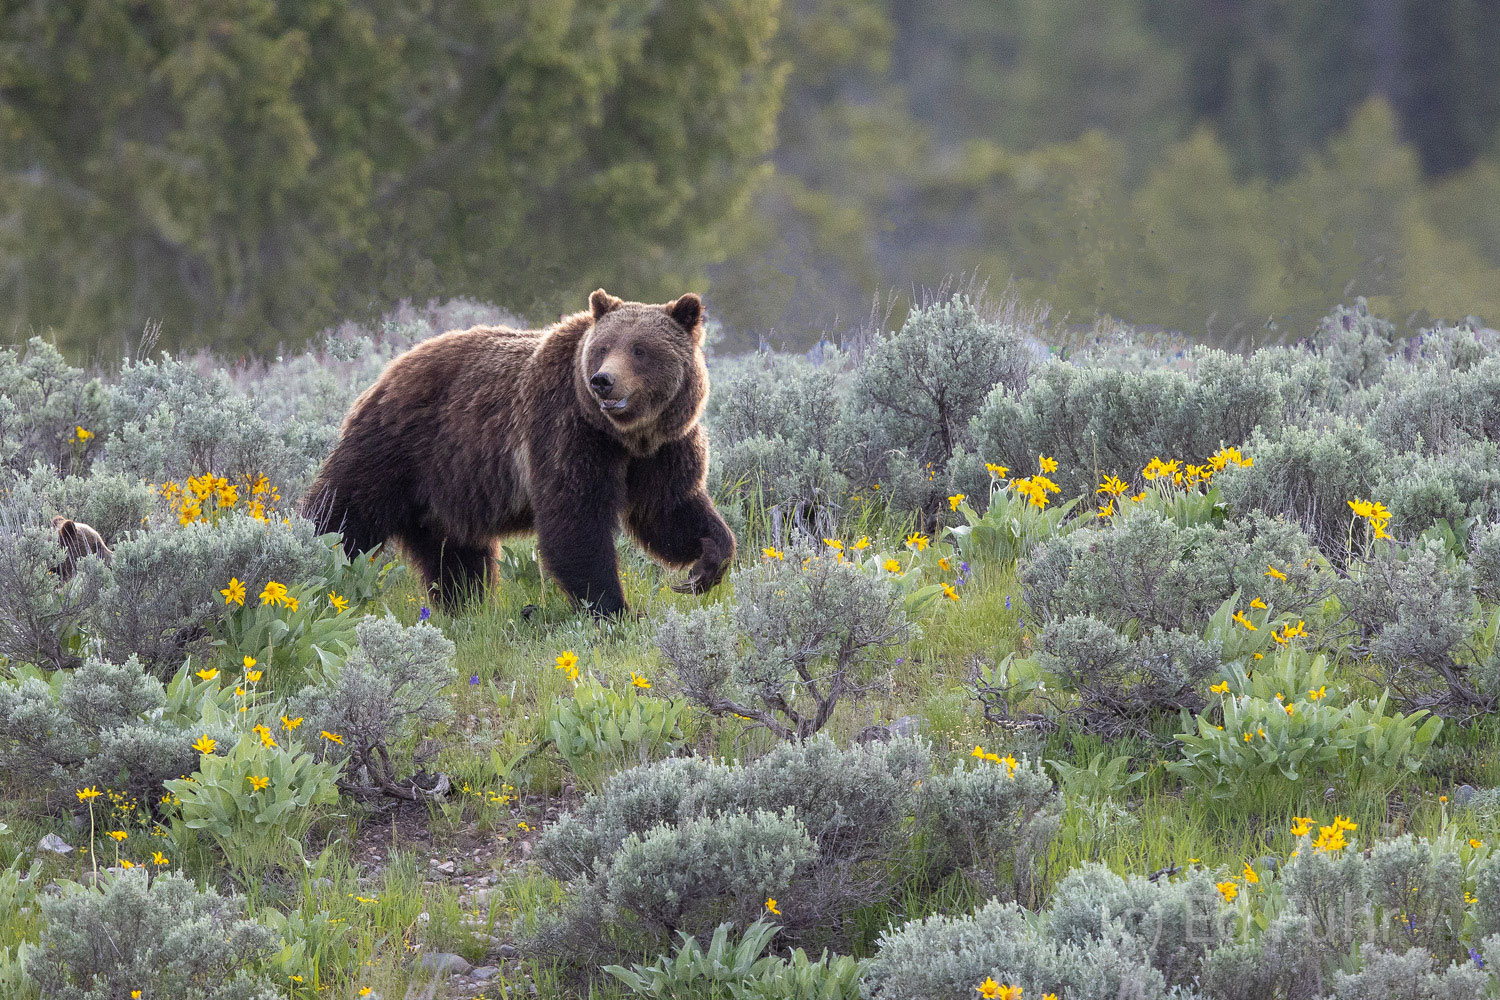 Grizzly 399 strides across the ridge.  On some days she and her young cubs will travel more than 10 miles.